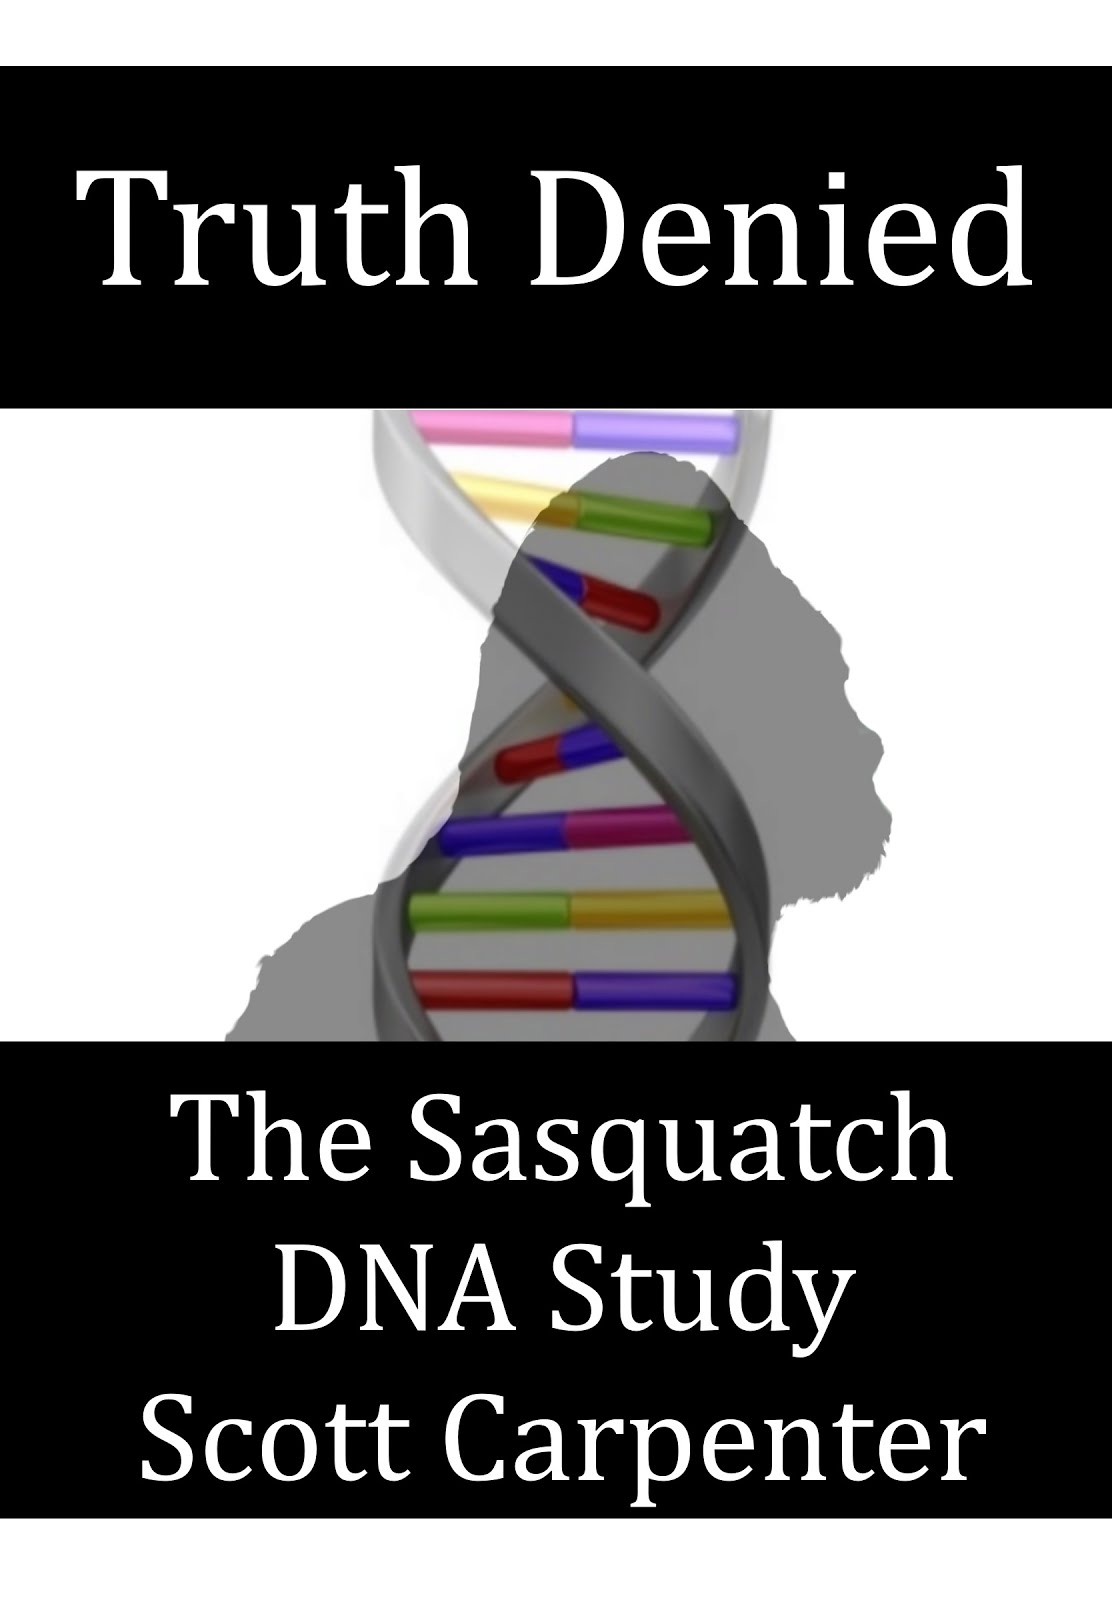 Coming soon TRUTH DENIED